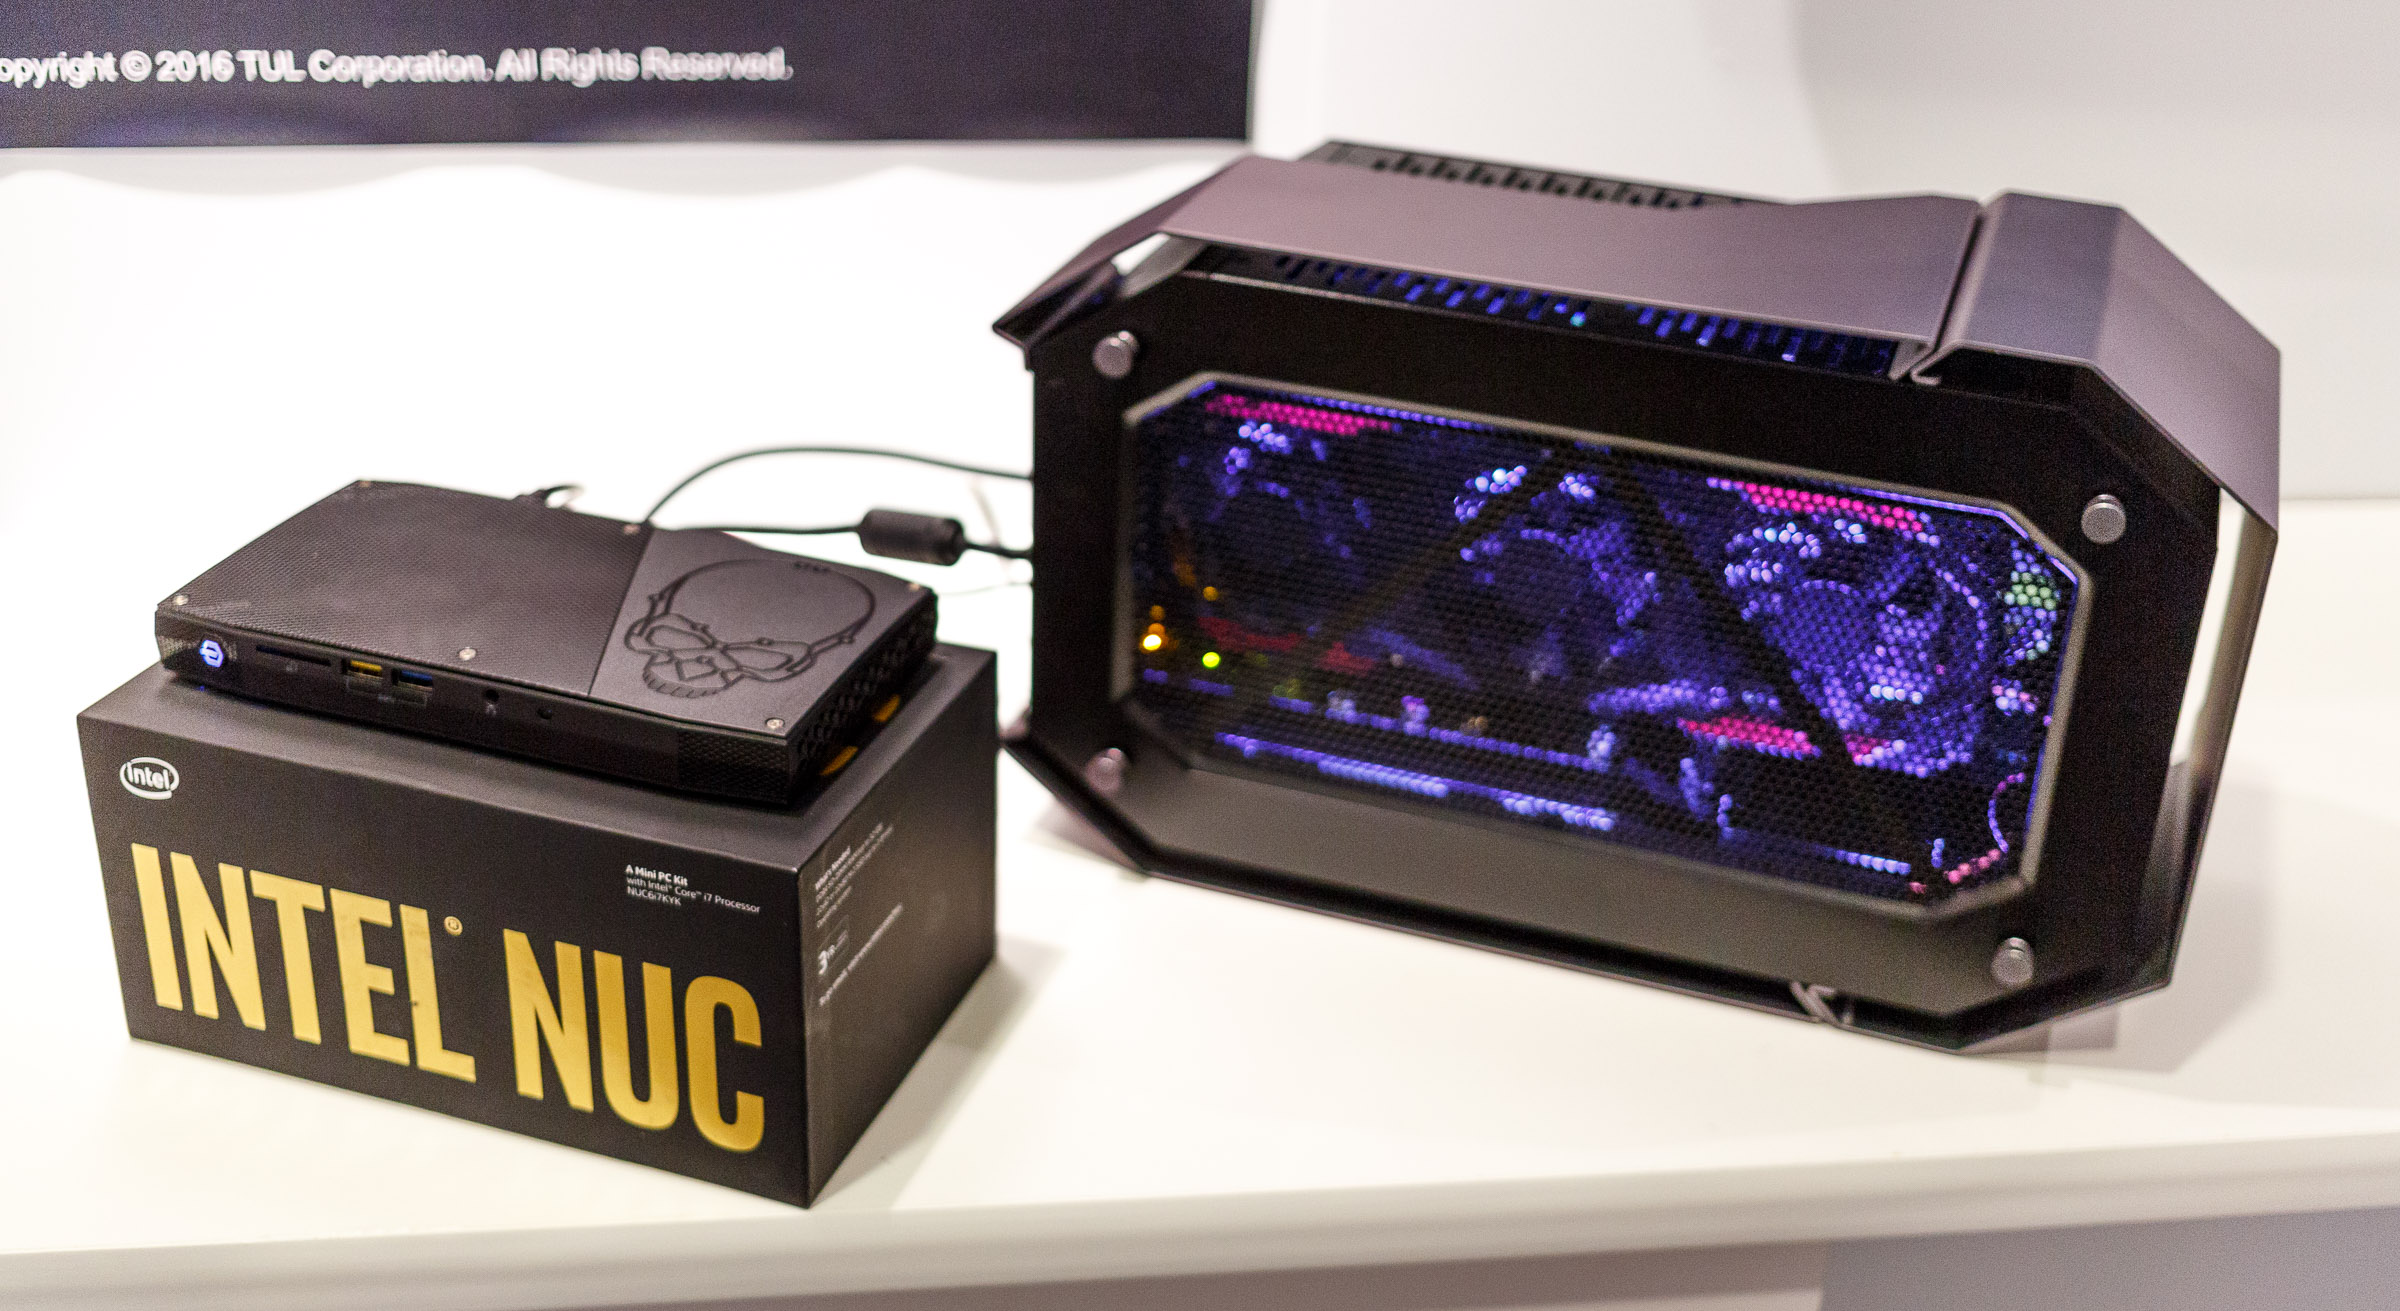 A tiny Intel NUC PC can play high-end games by connecting a hulking desktop graphics card in a Tul Devil Box via a Thunderbolt port.